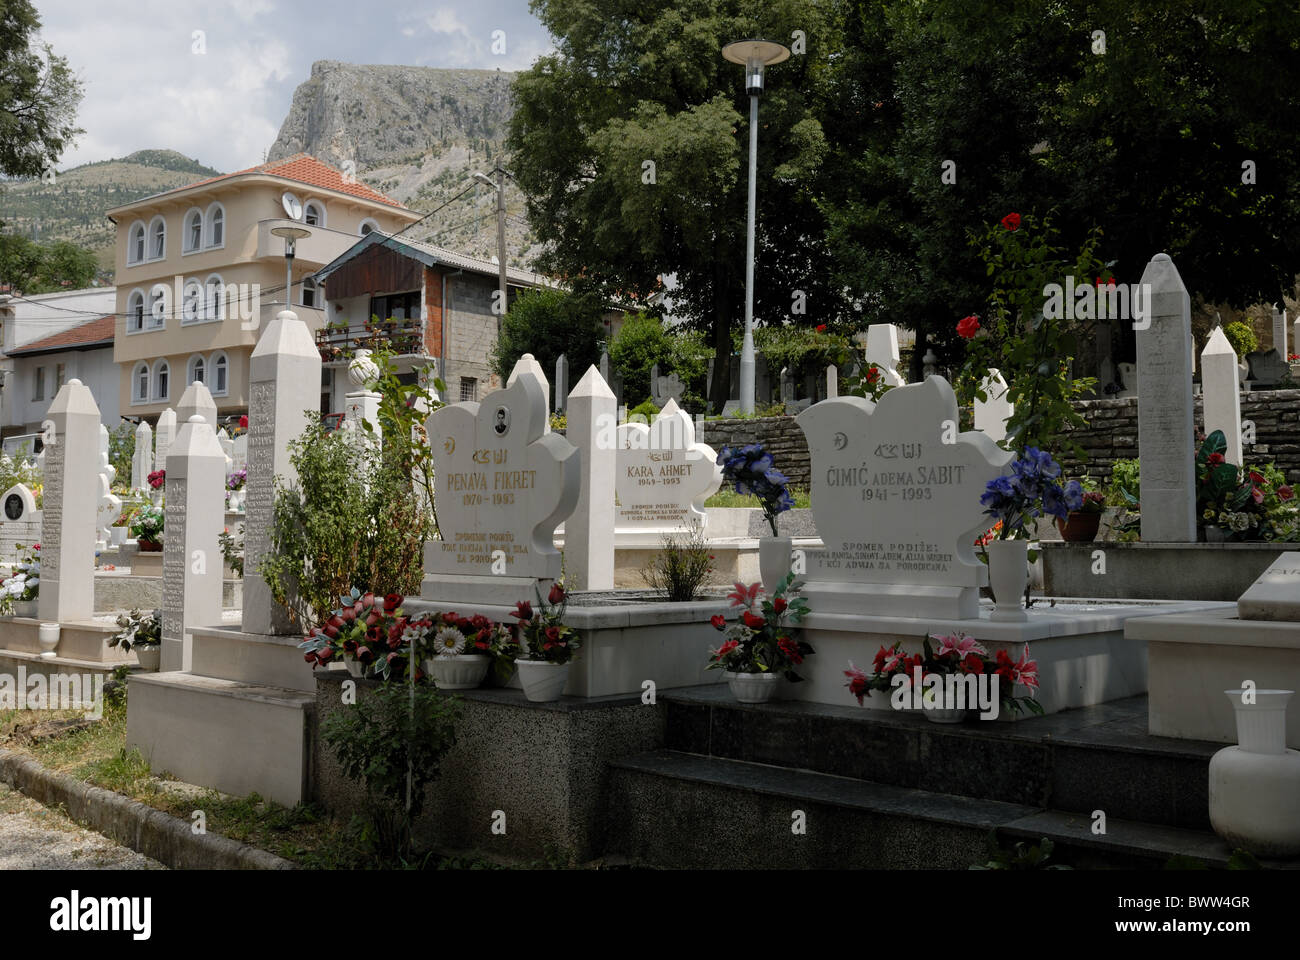 Before Bosnian war this was a public park and after a graveyard. Marsala Tita, Mostar Town, Herzegovina - Neretva - Stock Image